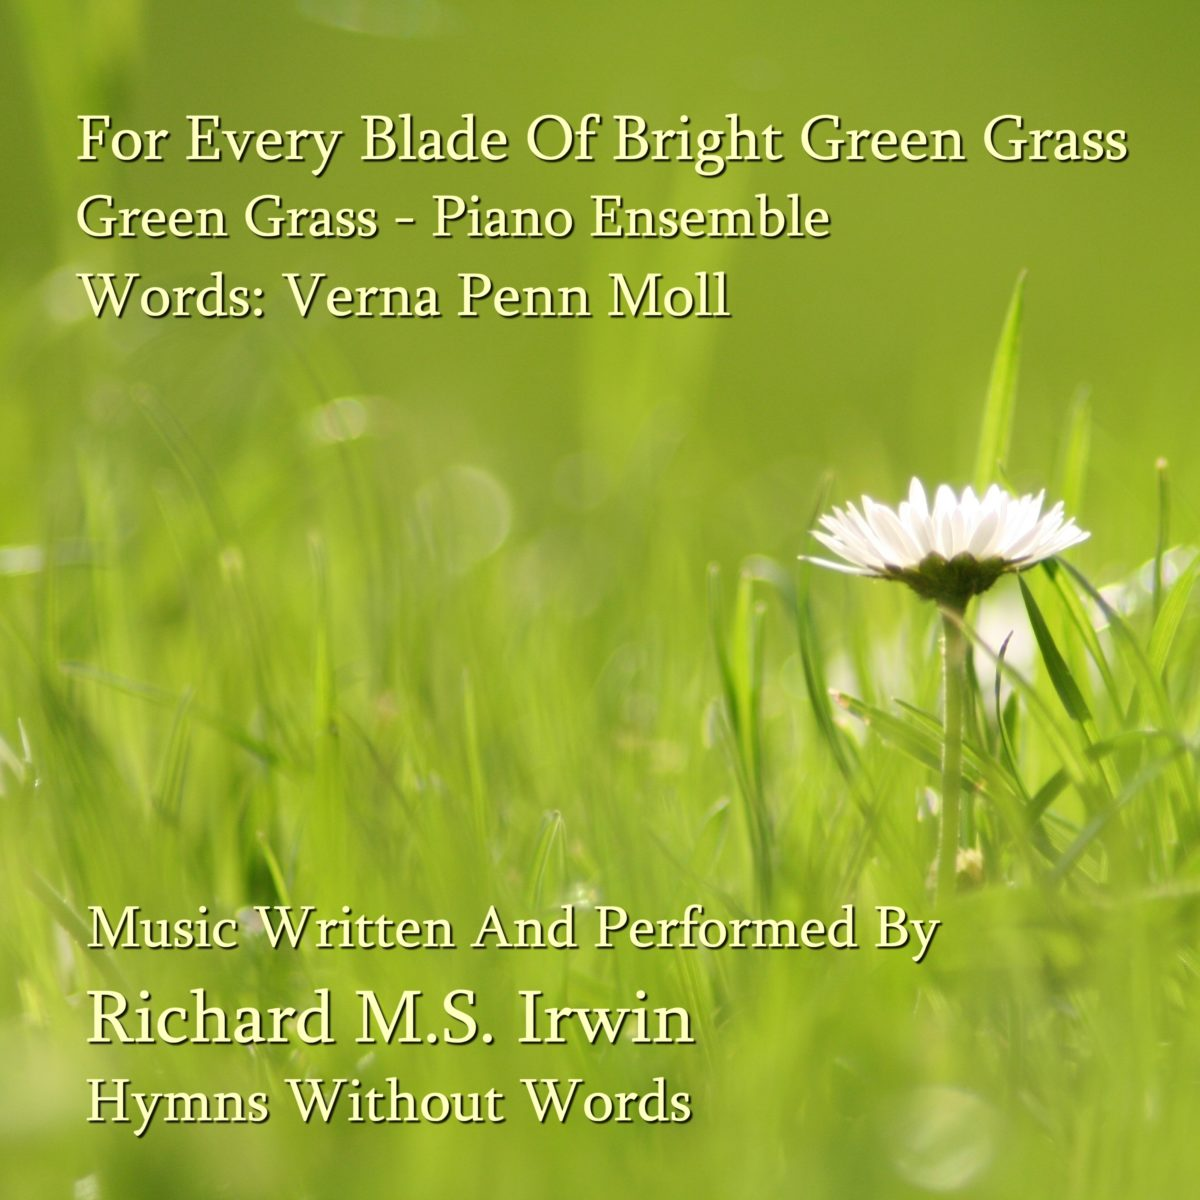 For Every Blade Of Bright Green Grass